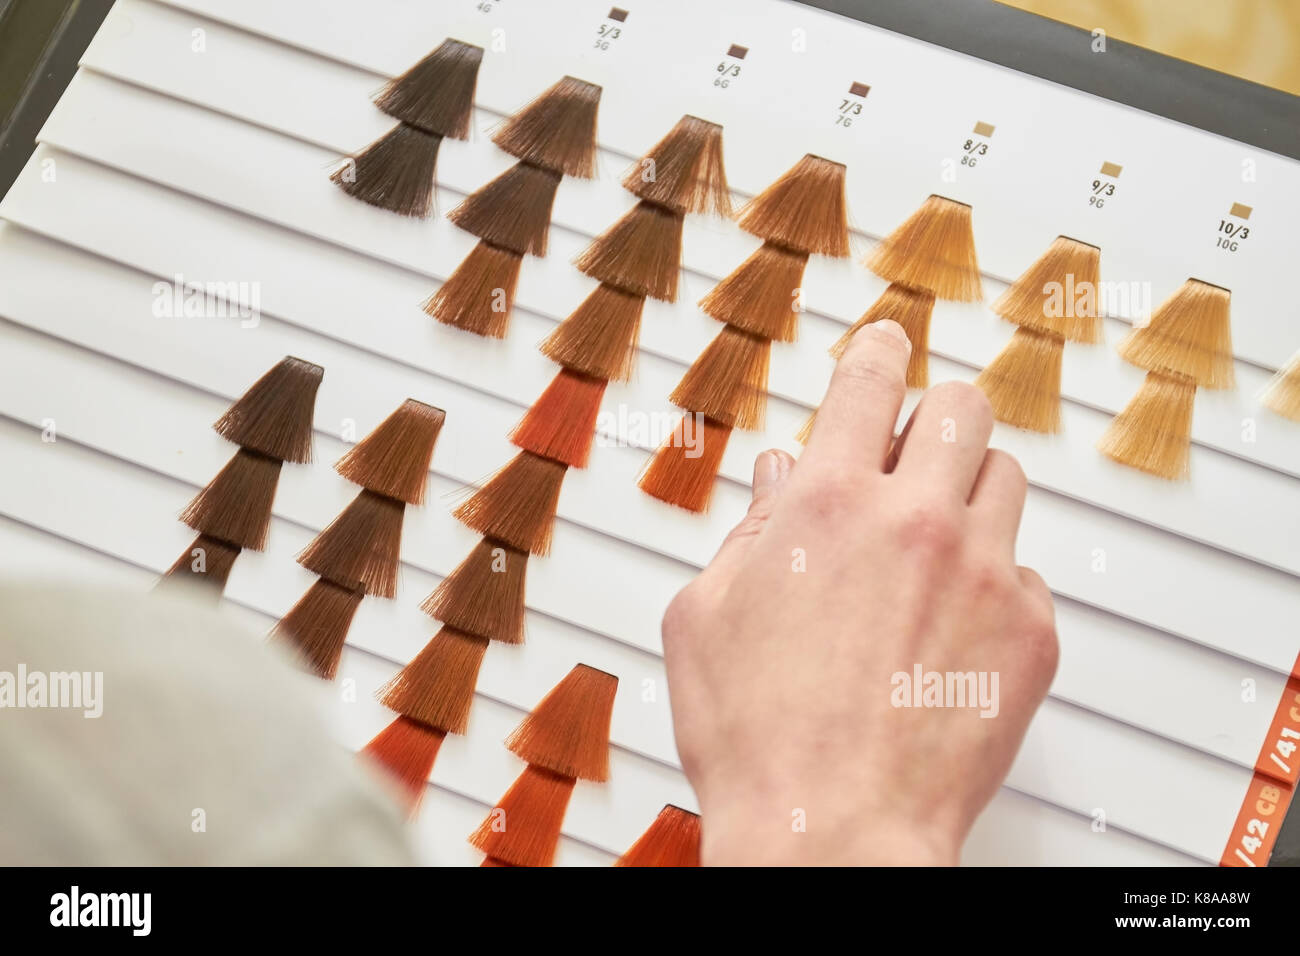 Color chart for hair dye. Hair color palette with a wide range.